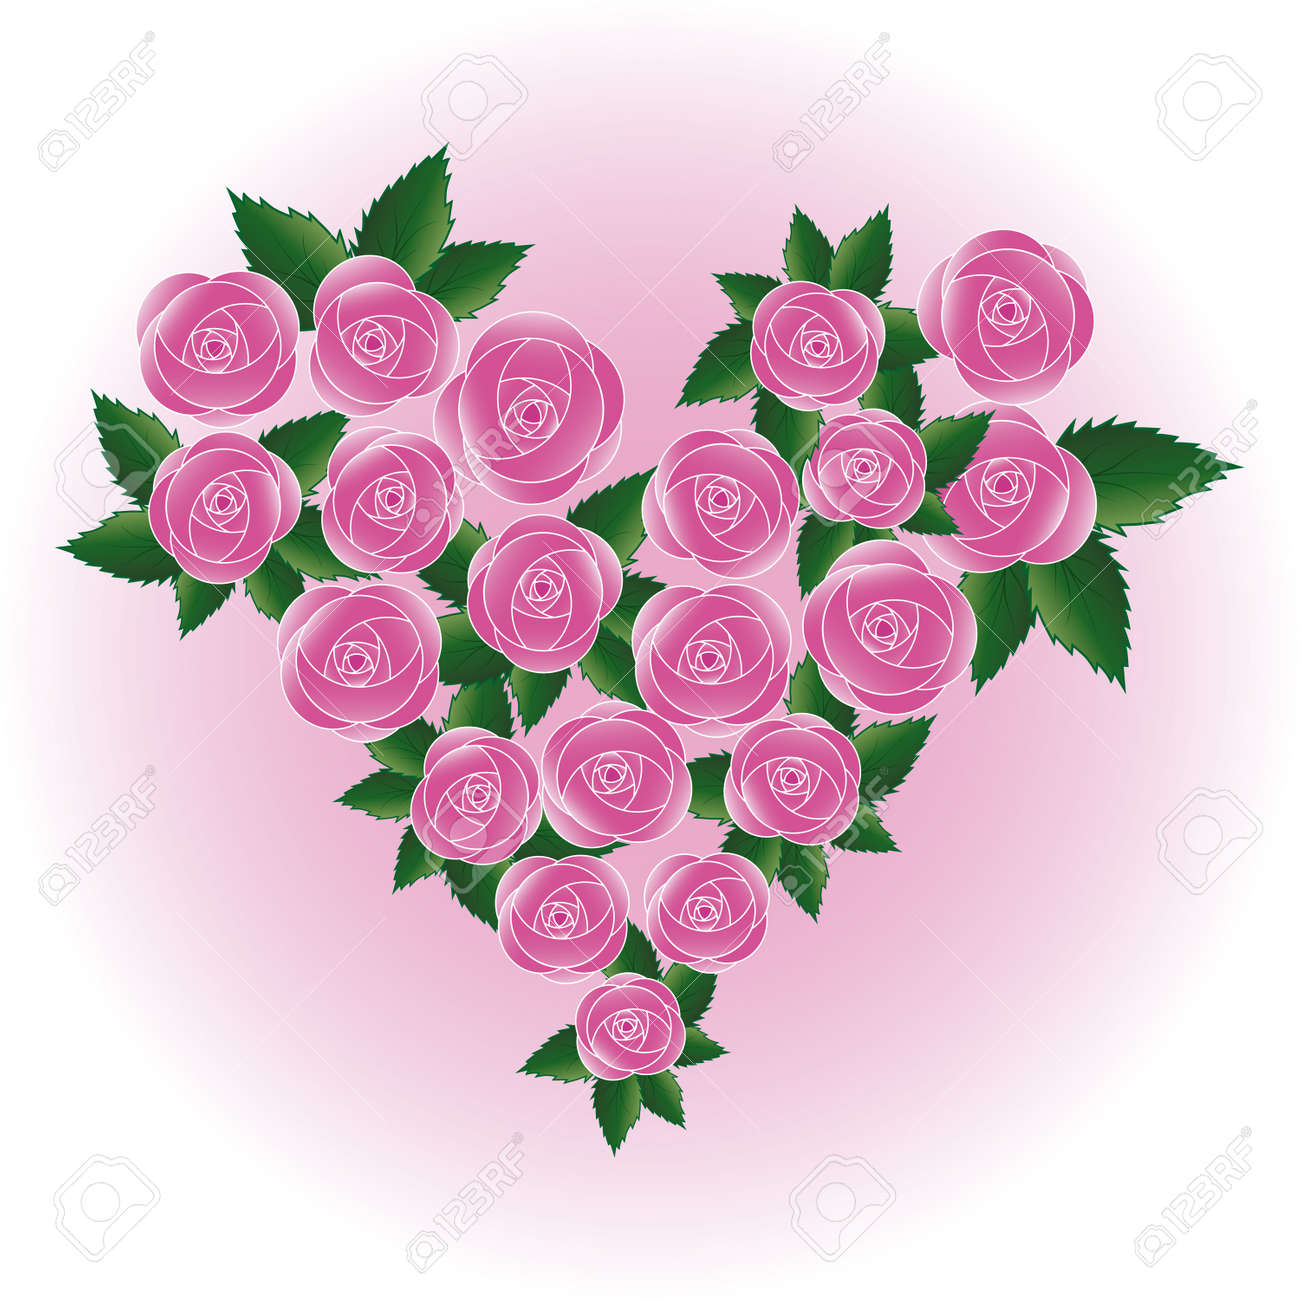 Pink Art Vector Rose Heart Flower Wedding Background Design